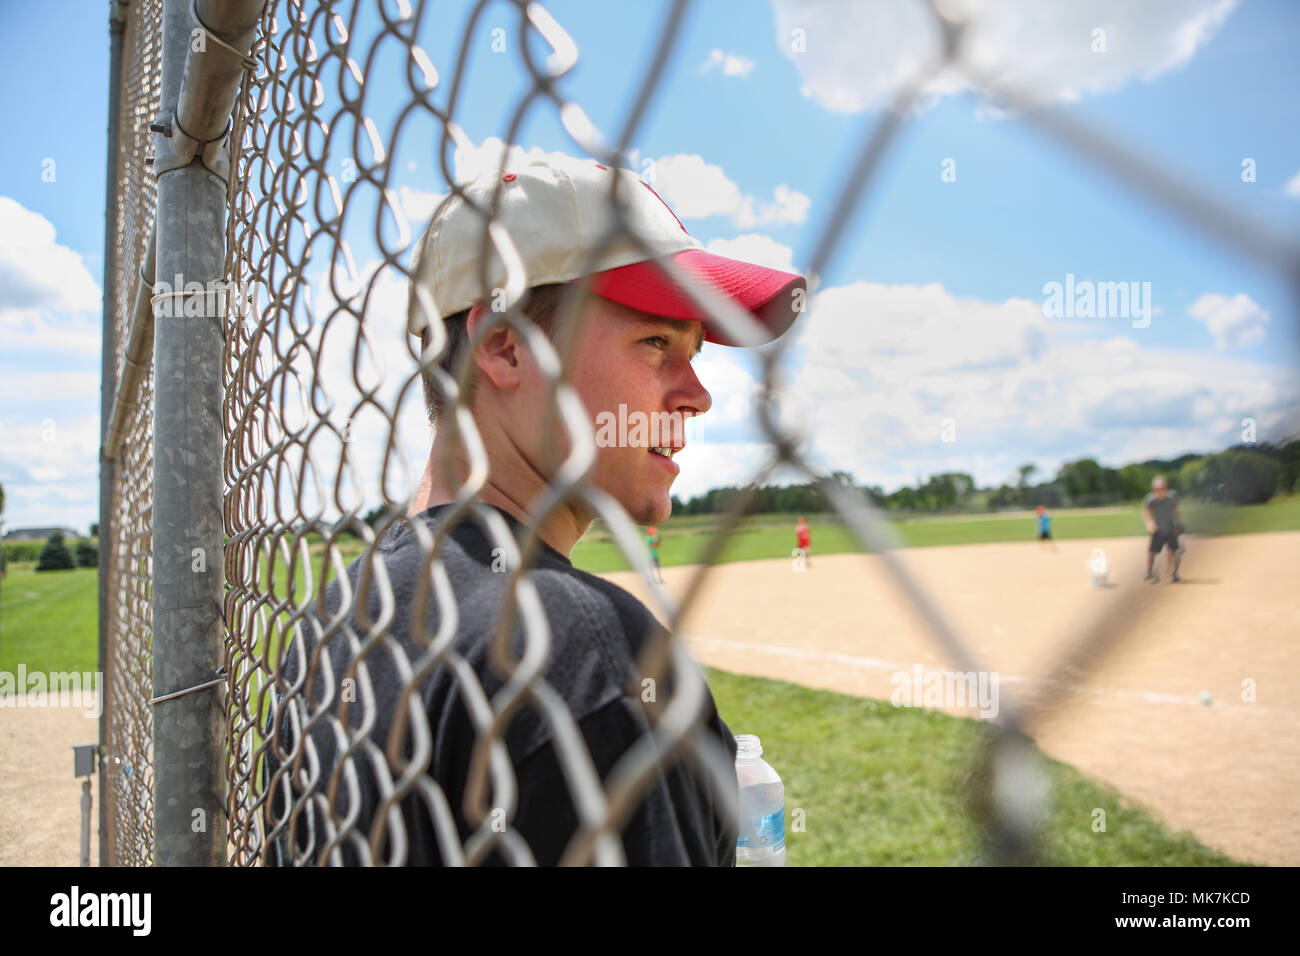 A baseball player photographed through the fence - Stock Image